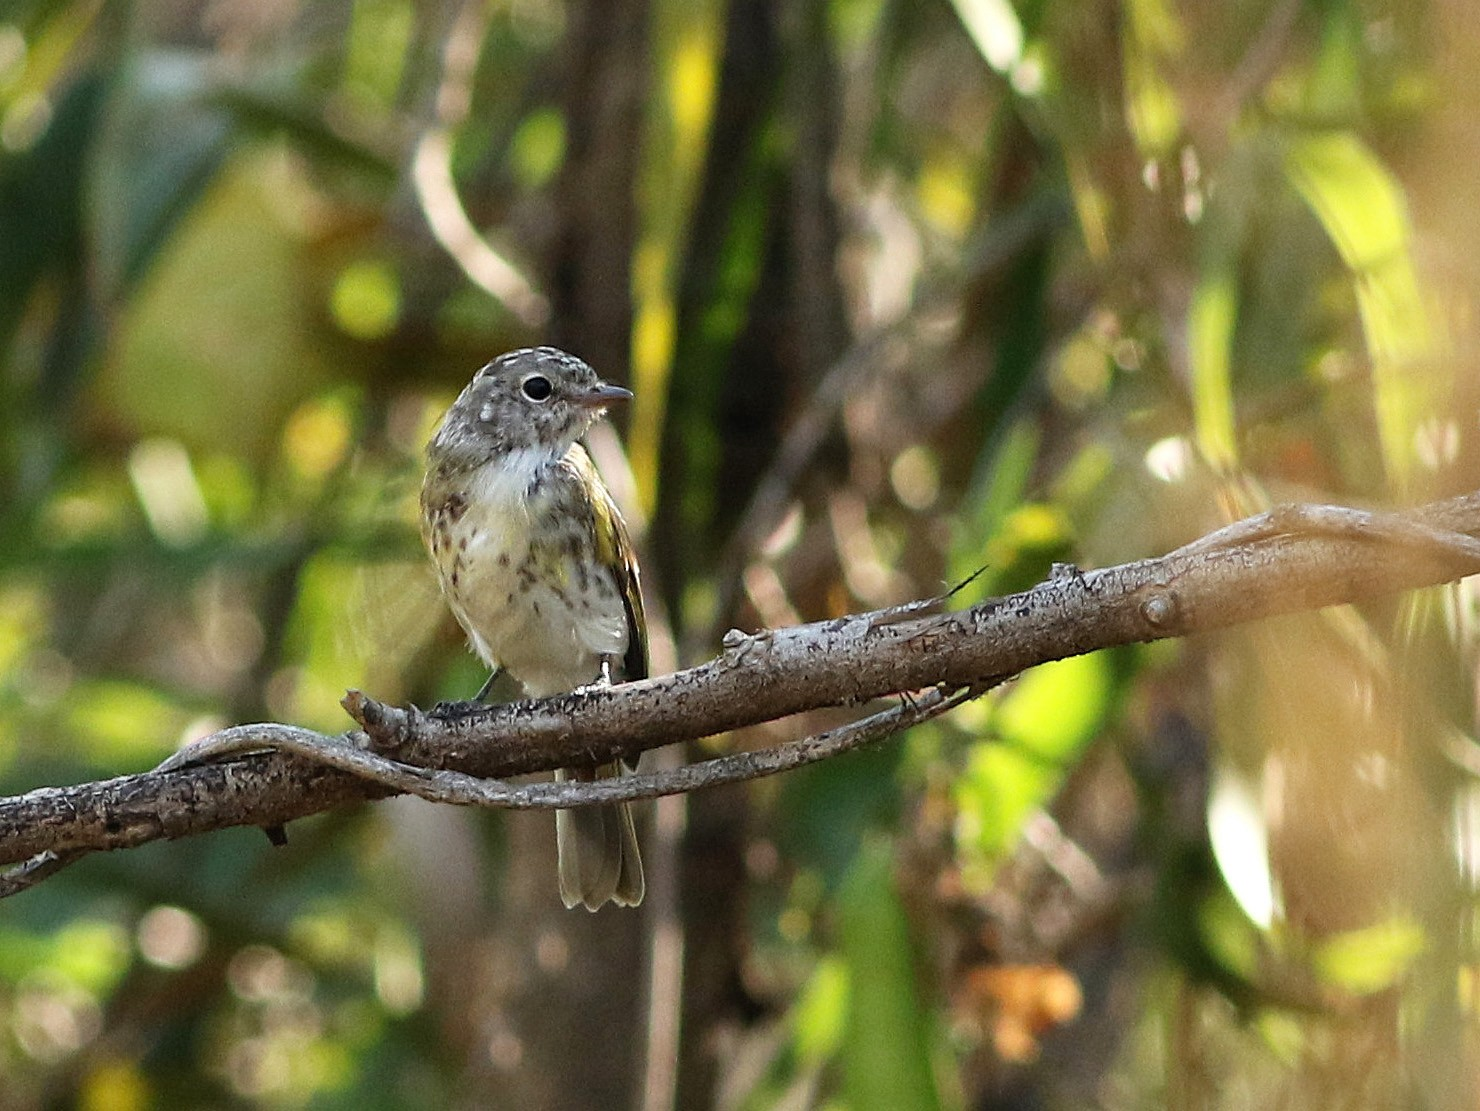 Lemon-bellied Flycatcher - Meng-Chieh (孟婕) FENG (馮)